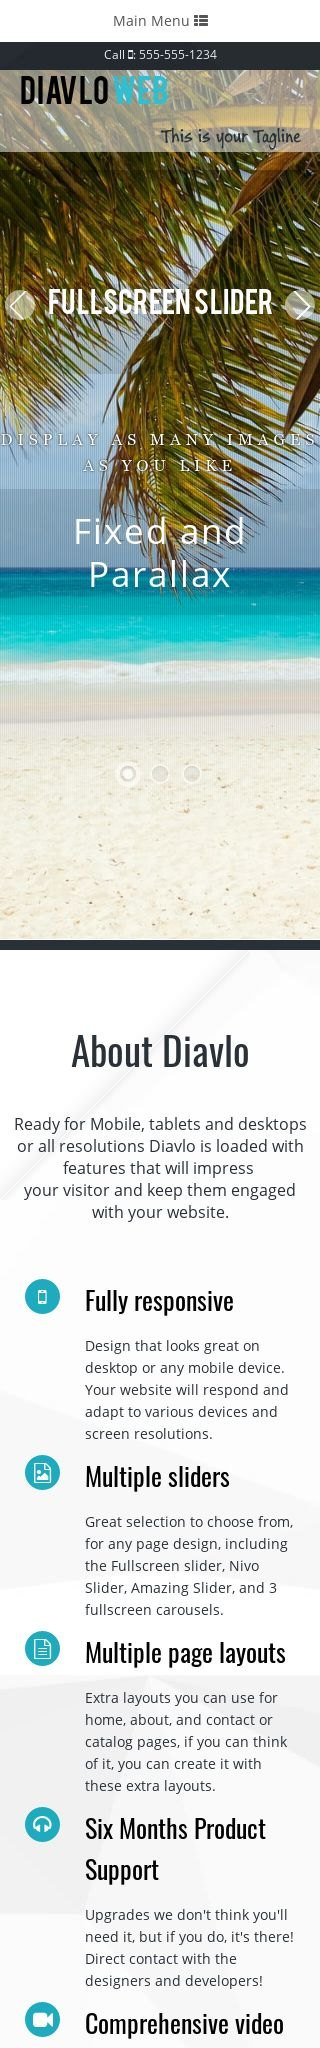 Mobile: Travel Web Template